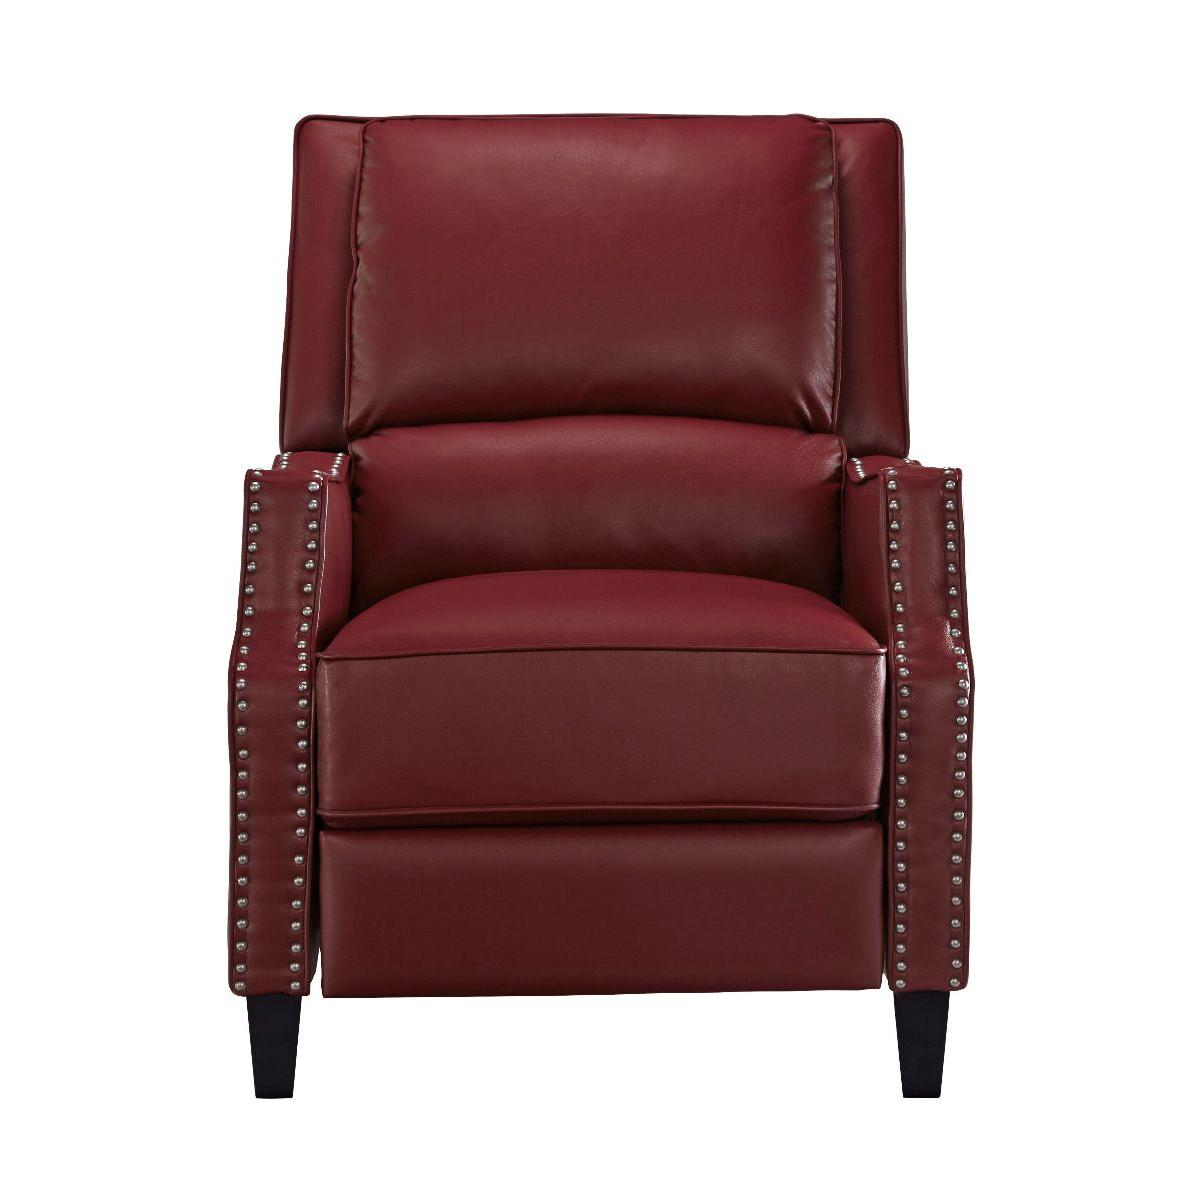 Alston Push Back Recliner, Red